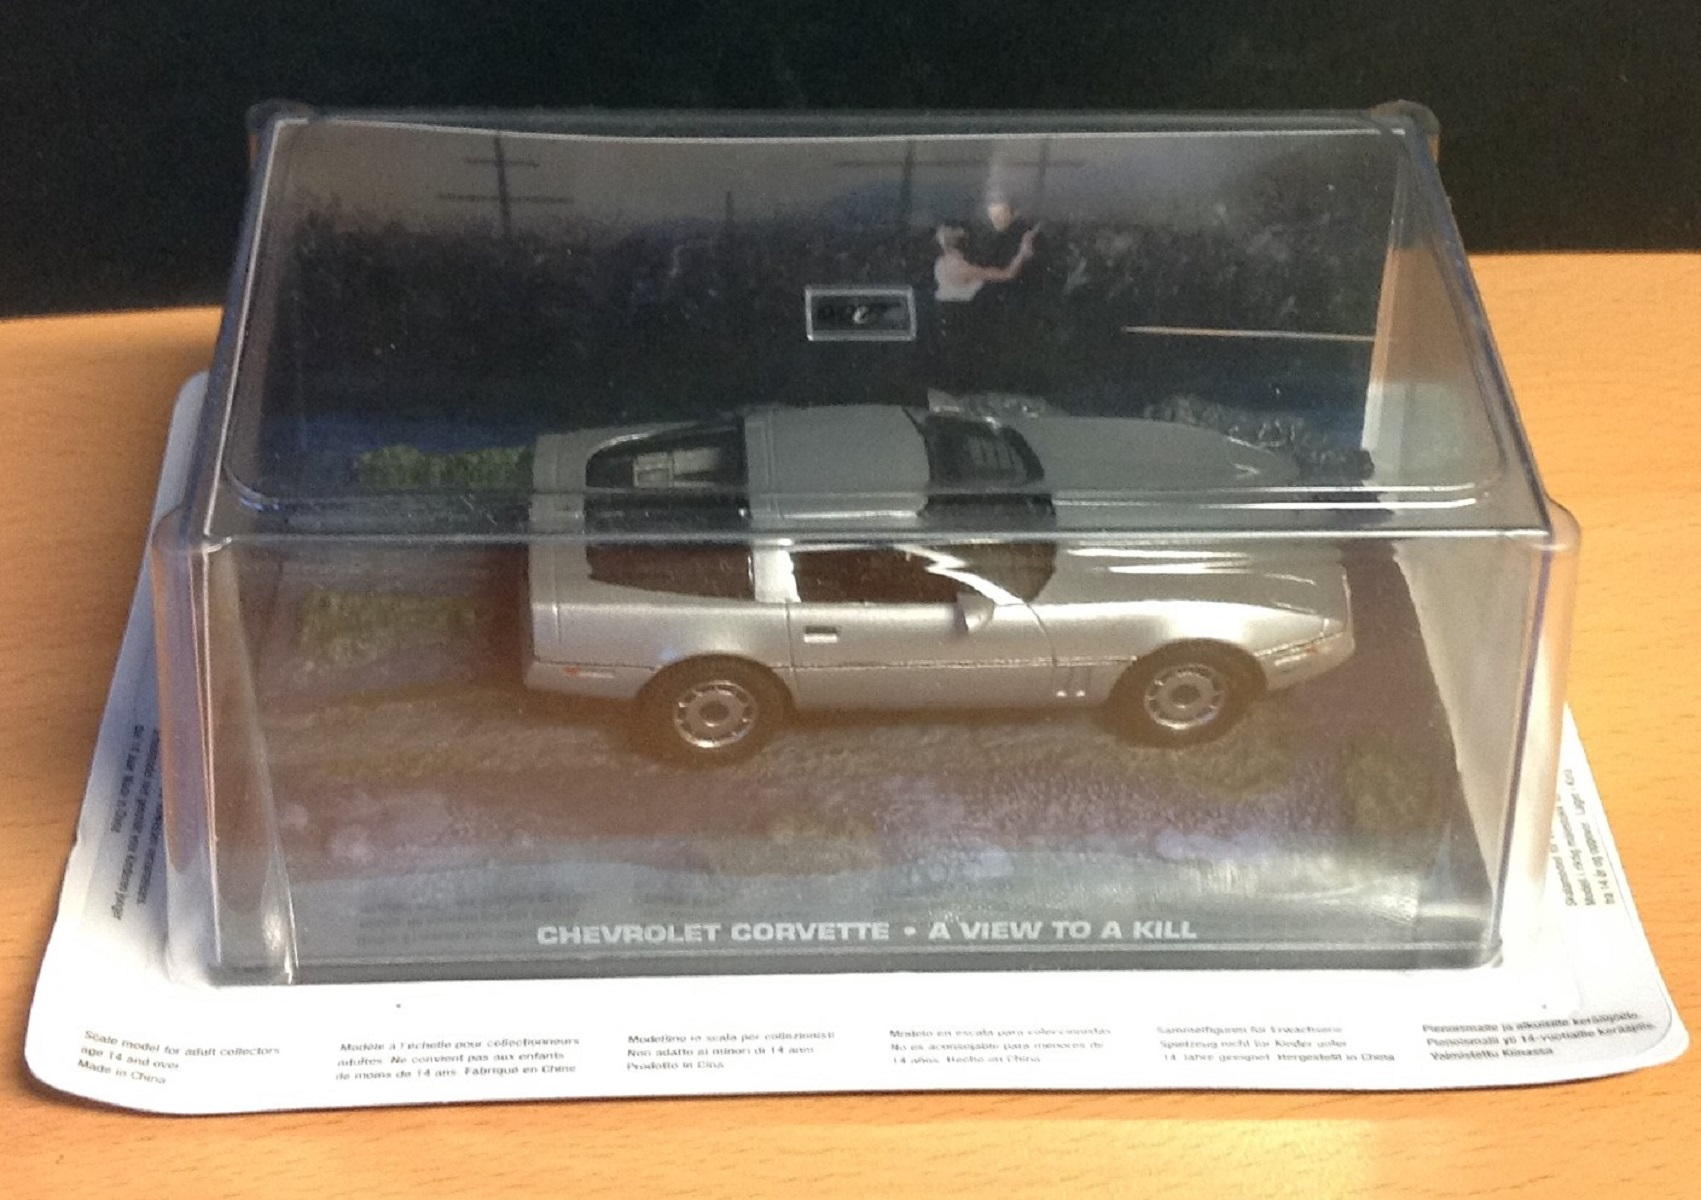 James Bond car collection edition no 37 Chevrolet Corvette scale Model from A View To A Kill comes - Image 2 of 2